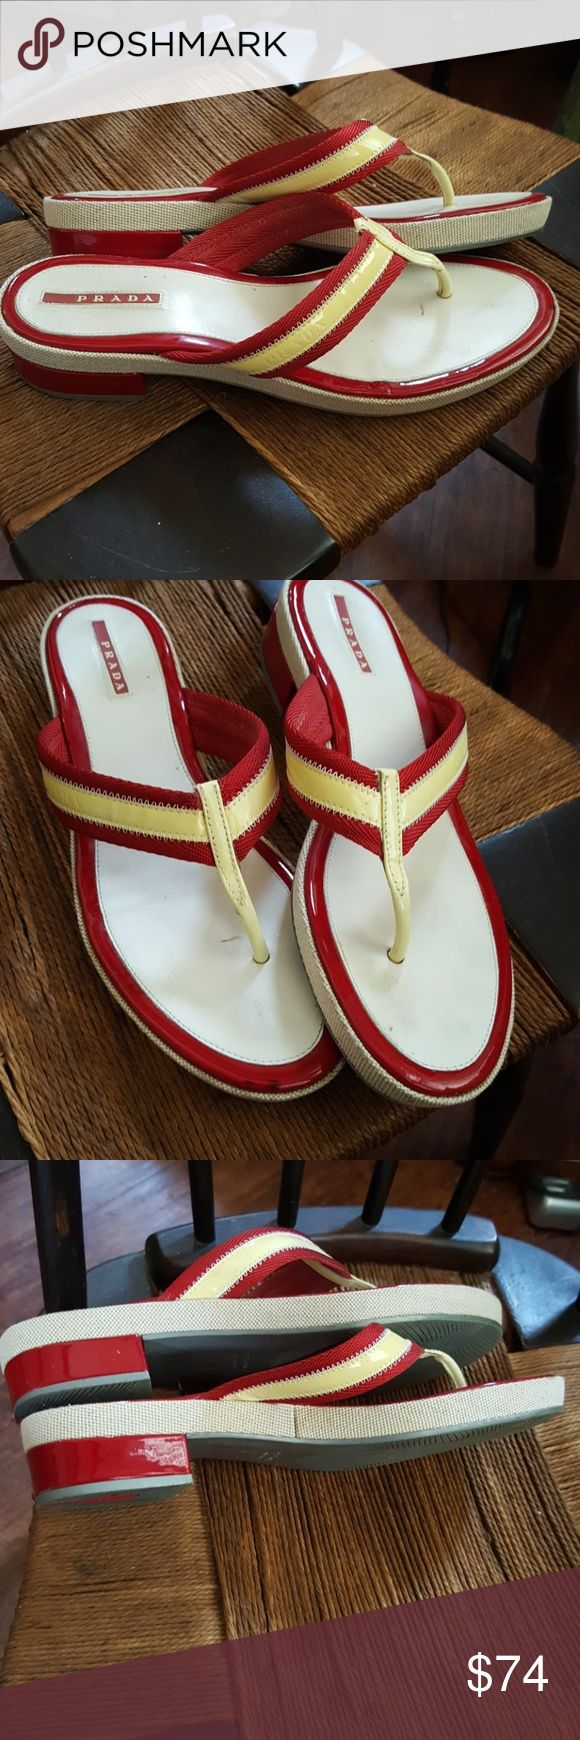 Prada flip flops 40 I am sadly reposhing these. No matter how many times I buy sandal with a toe piece I just simply can't wear them. There is some yellowing of the patent and Mild signs of wear but these are overall gorgeous shoes in great condition Prada Shoes Sandals